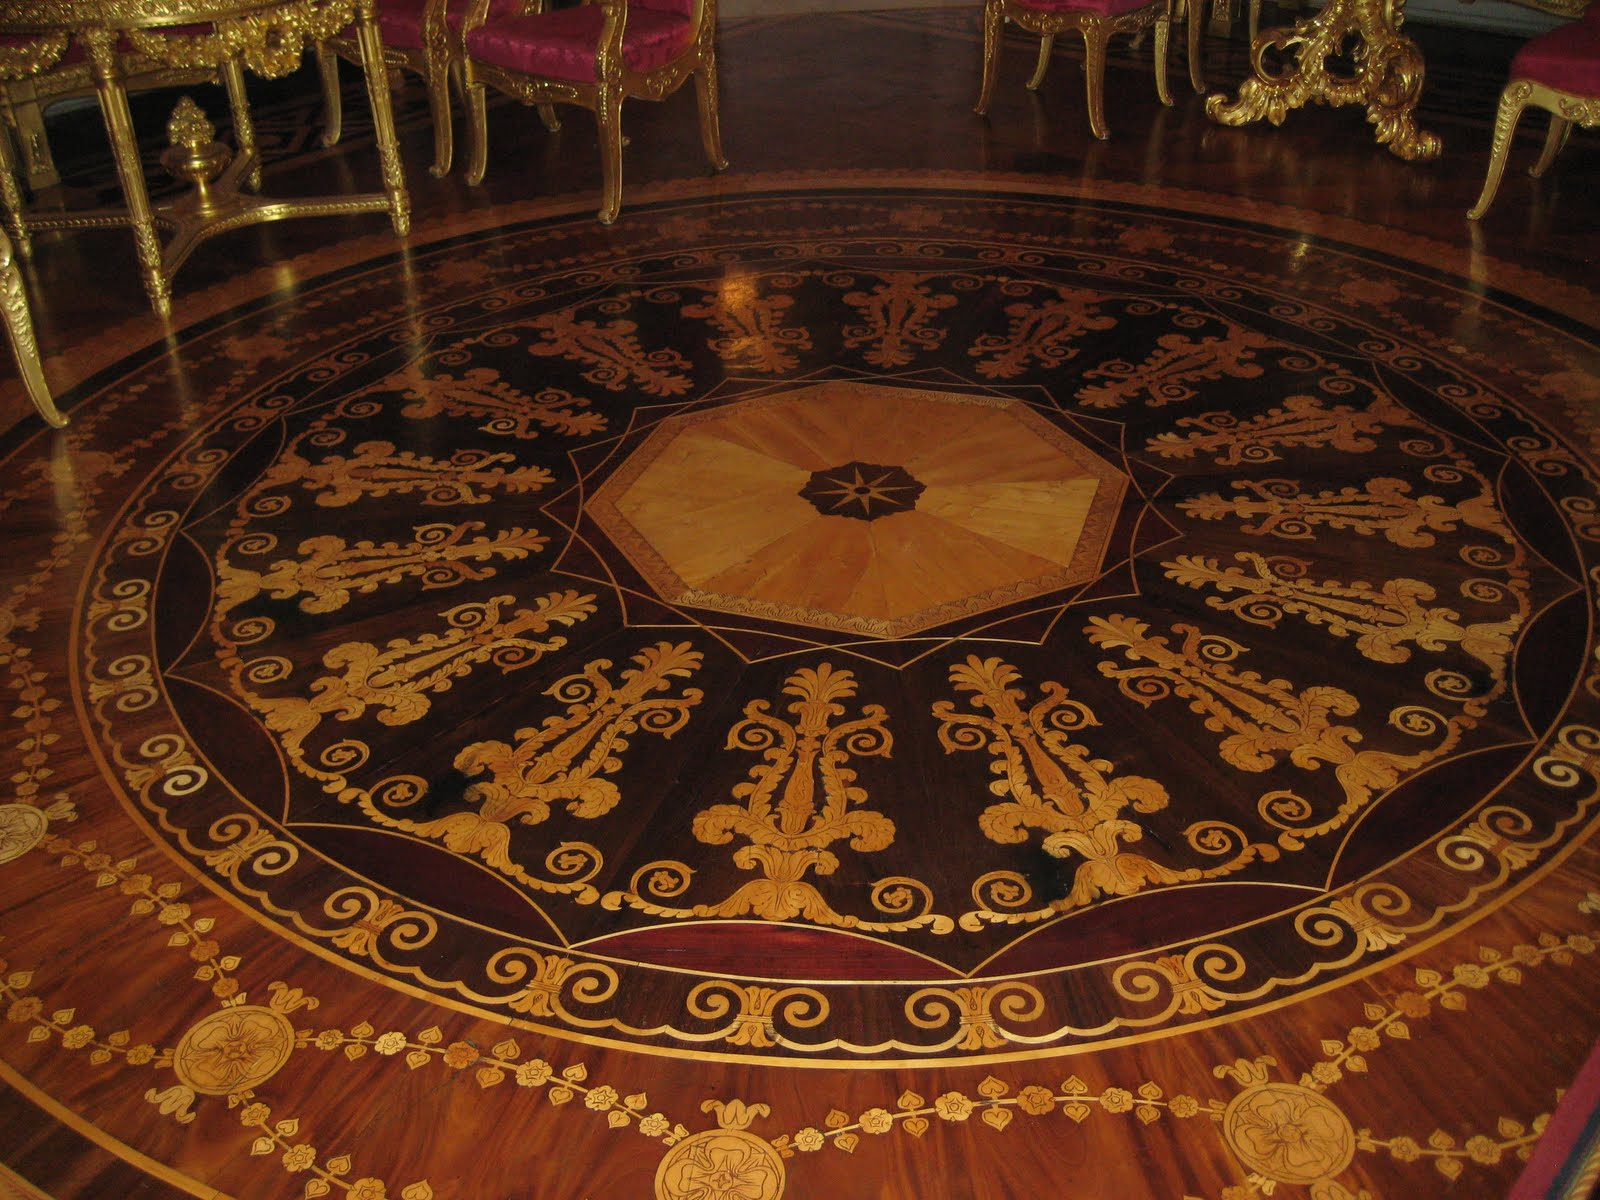 Parquet Flooring. Hardwood Floor Border & Medallion Inlays.